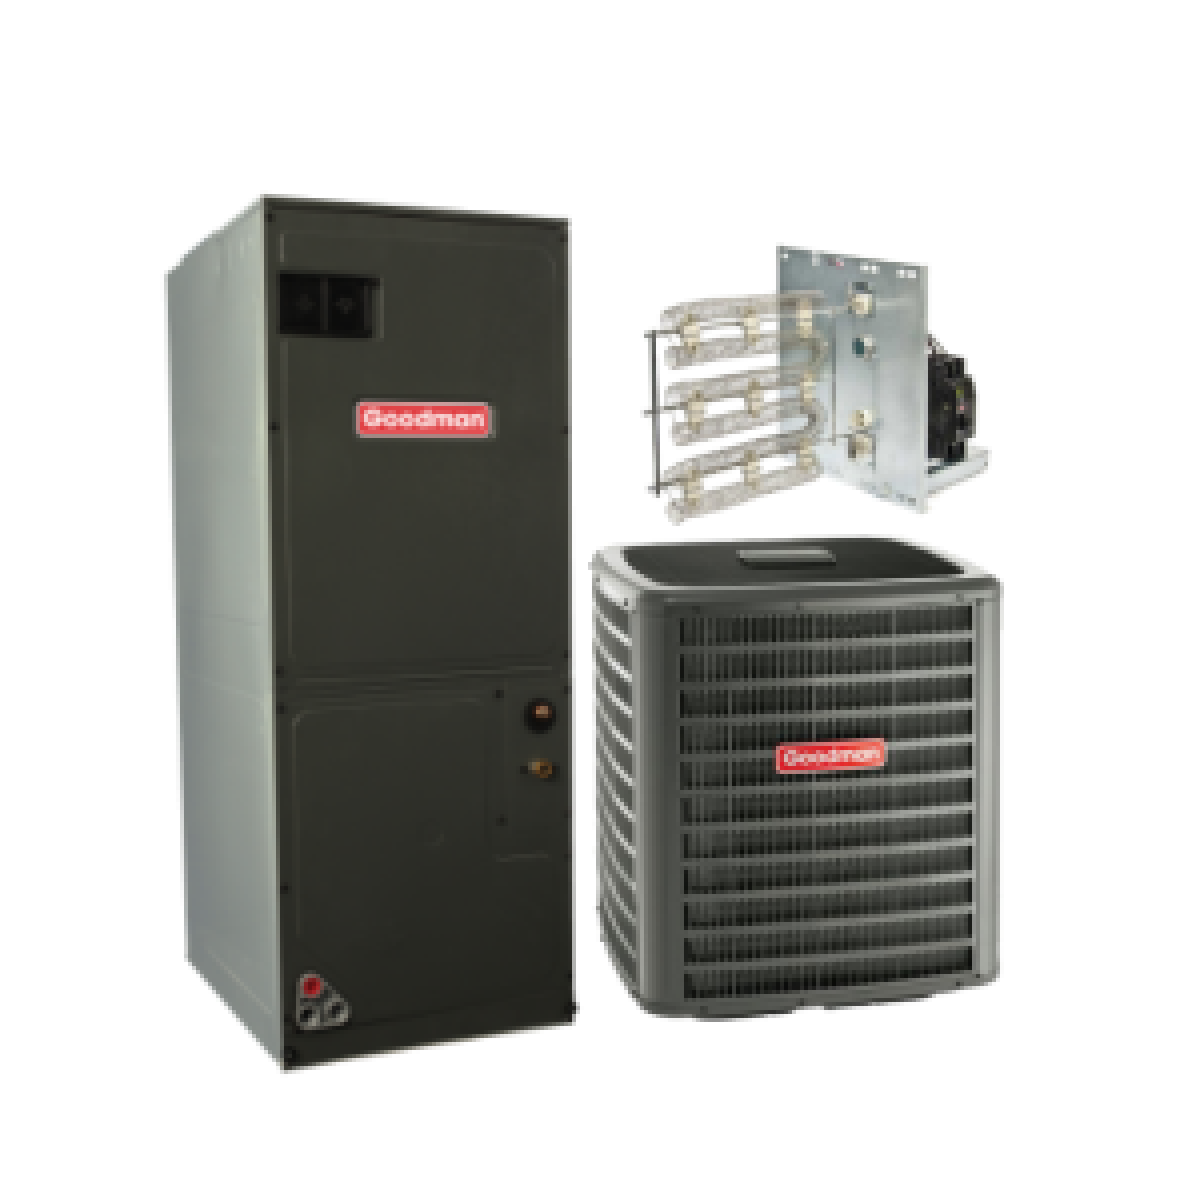 3 5 Ton Ac Unit >> Goodman 3.5 Ton 15 SEER Heat Pump Split System - 3.5 Ton - 5.0 Ton - AC/Heat Pump - Systems